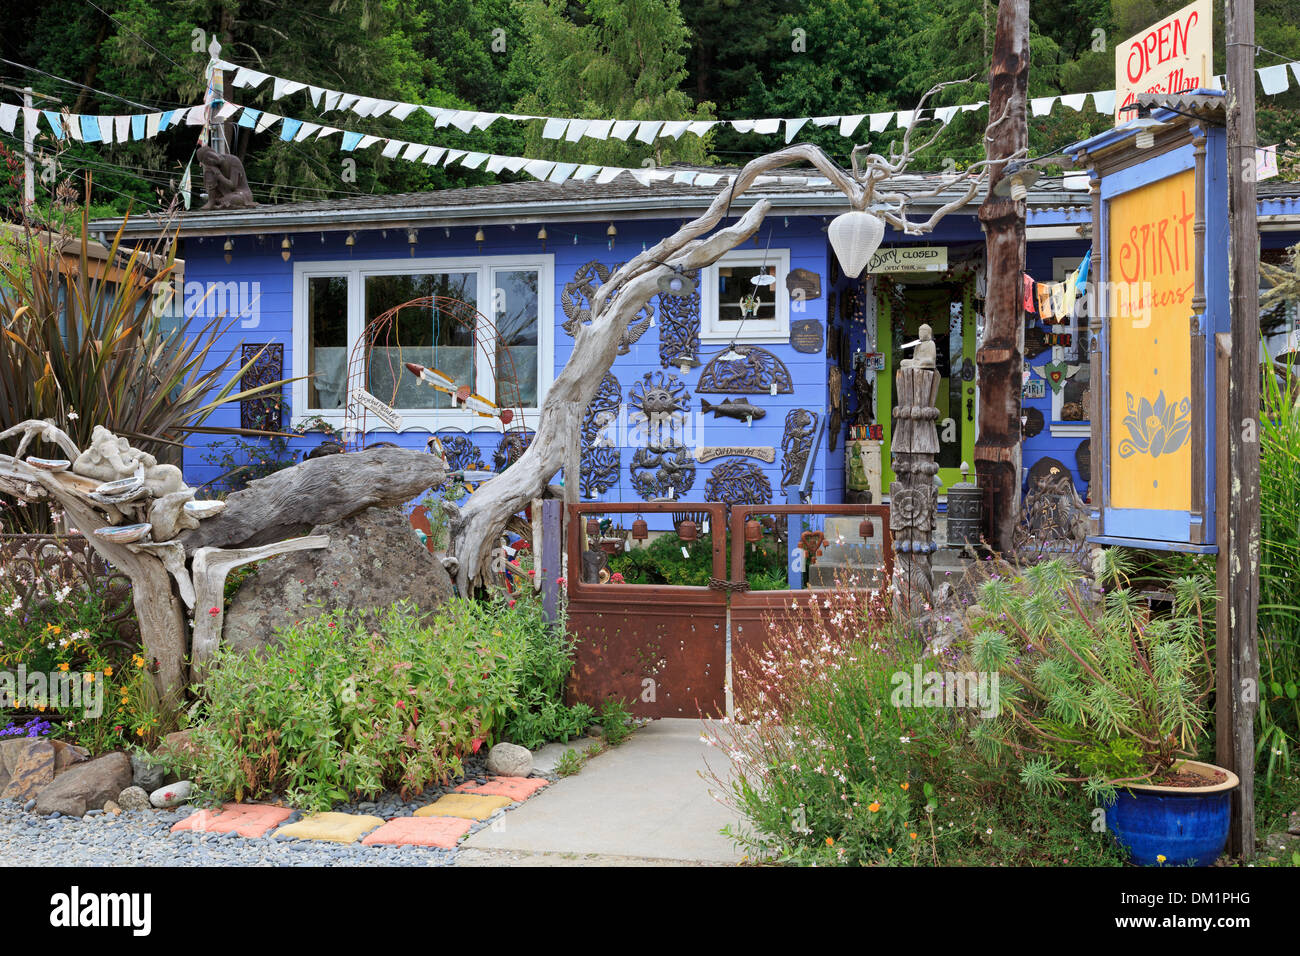 Spirit Matters Gallery,Inverness Park,Point Reyes Station,California,USA - Stock Image